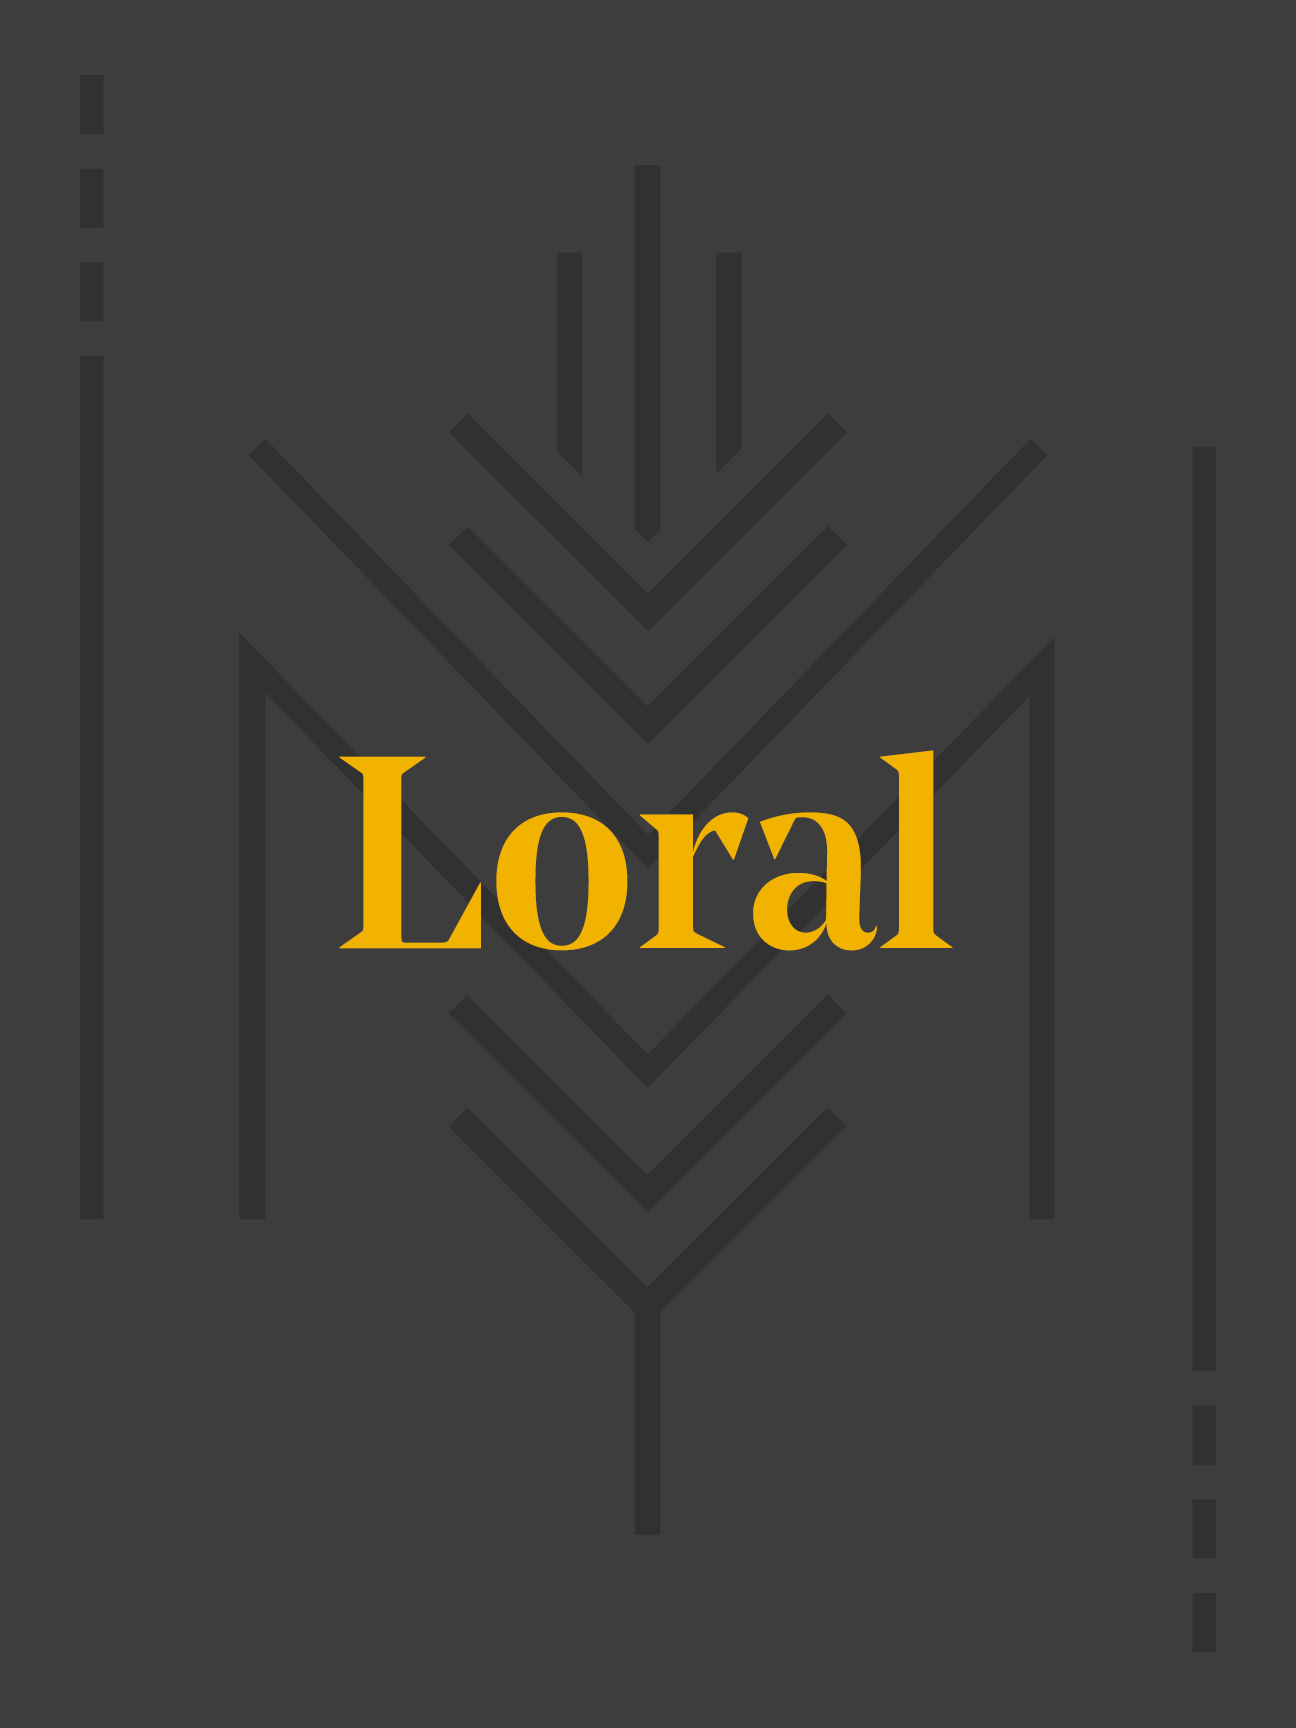 Loral.png